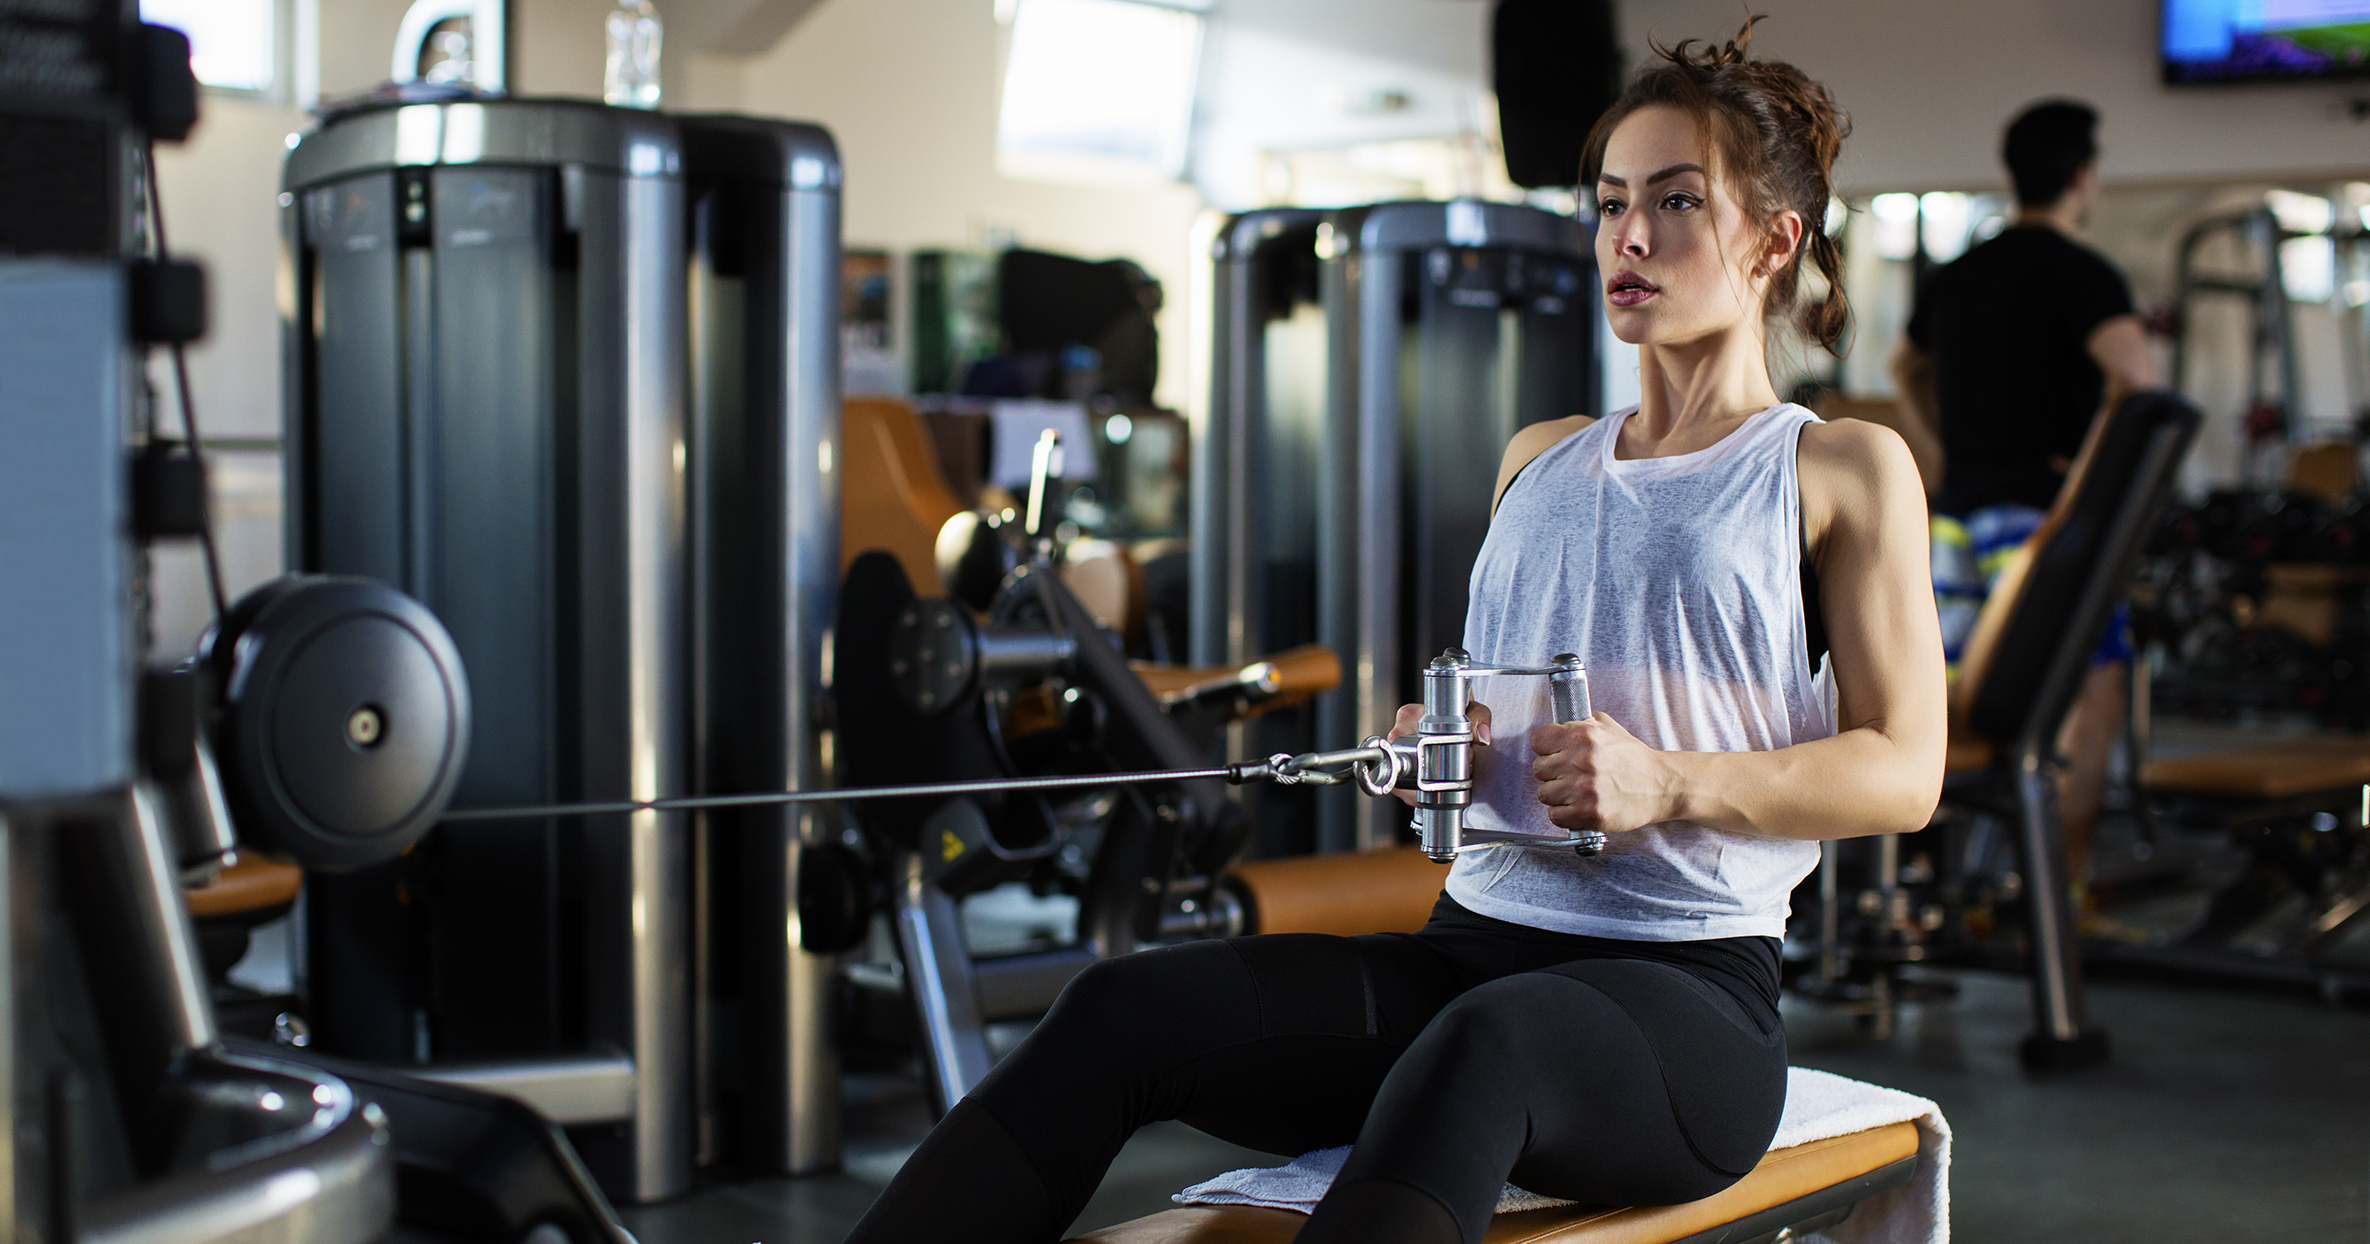 Add This Push-Pull Workout Plan to Your Gym Routine | Shape